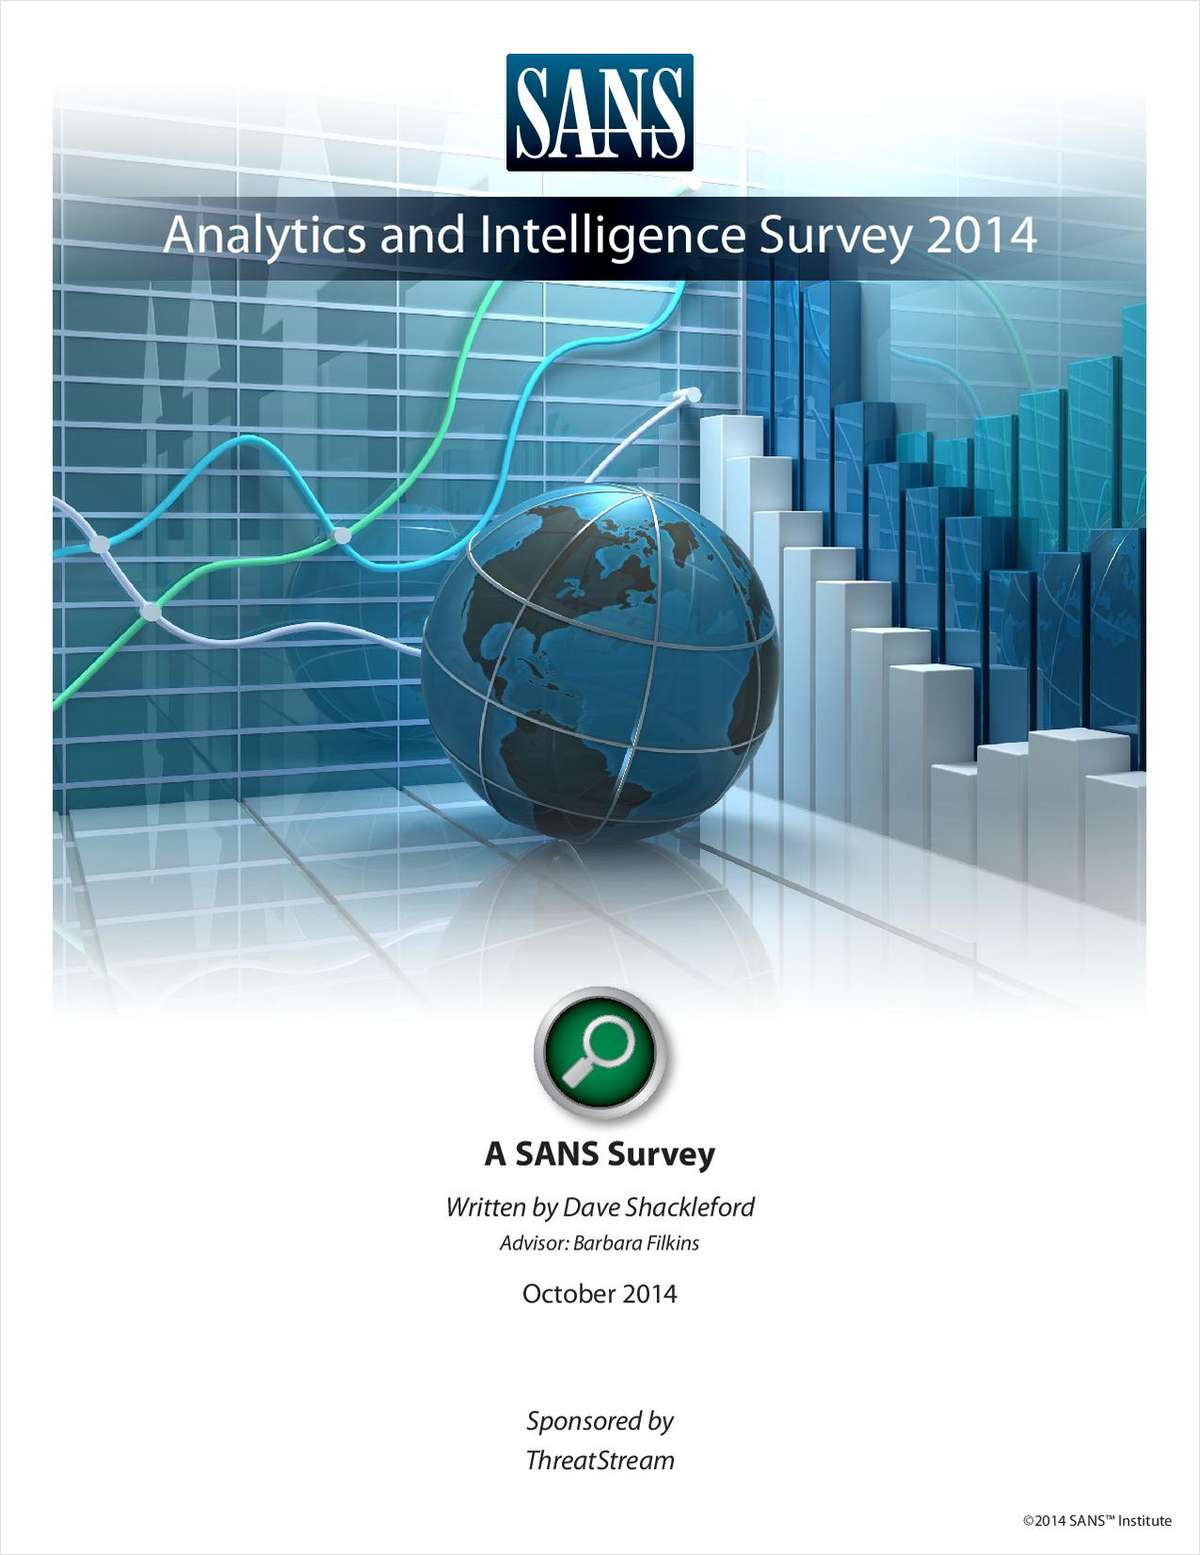 SANS Analytics and Intelligence Survey